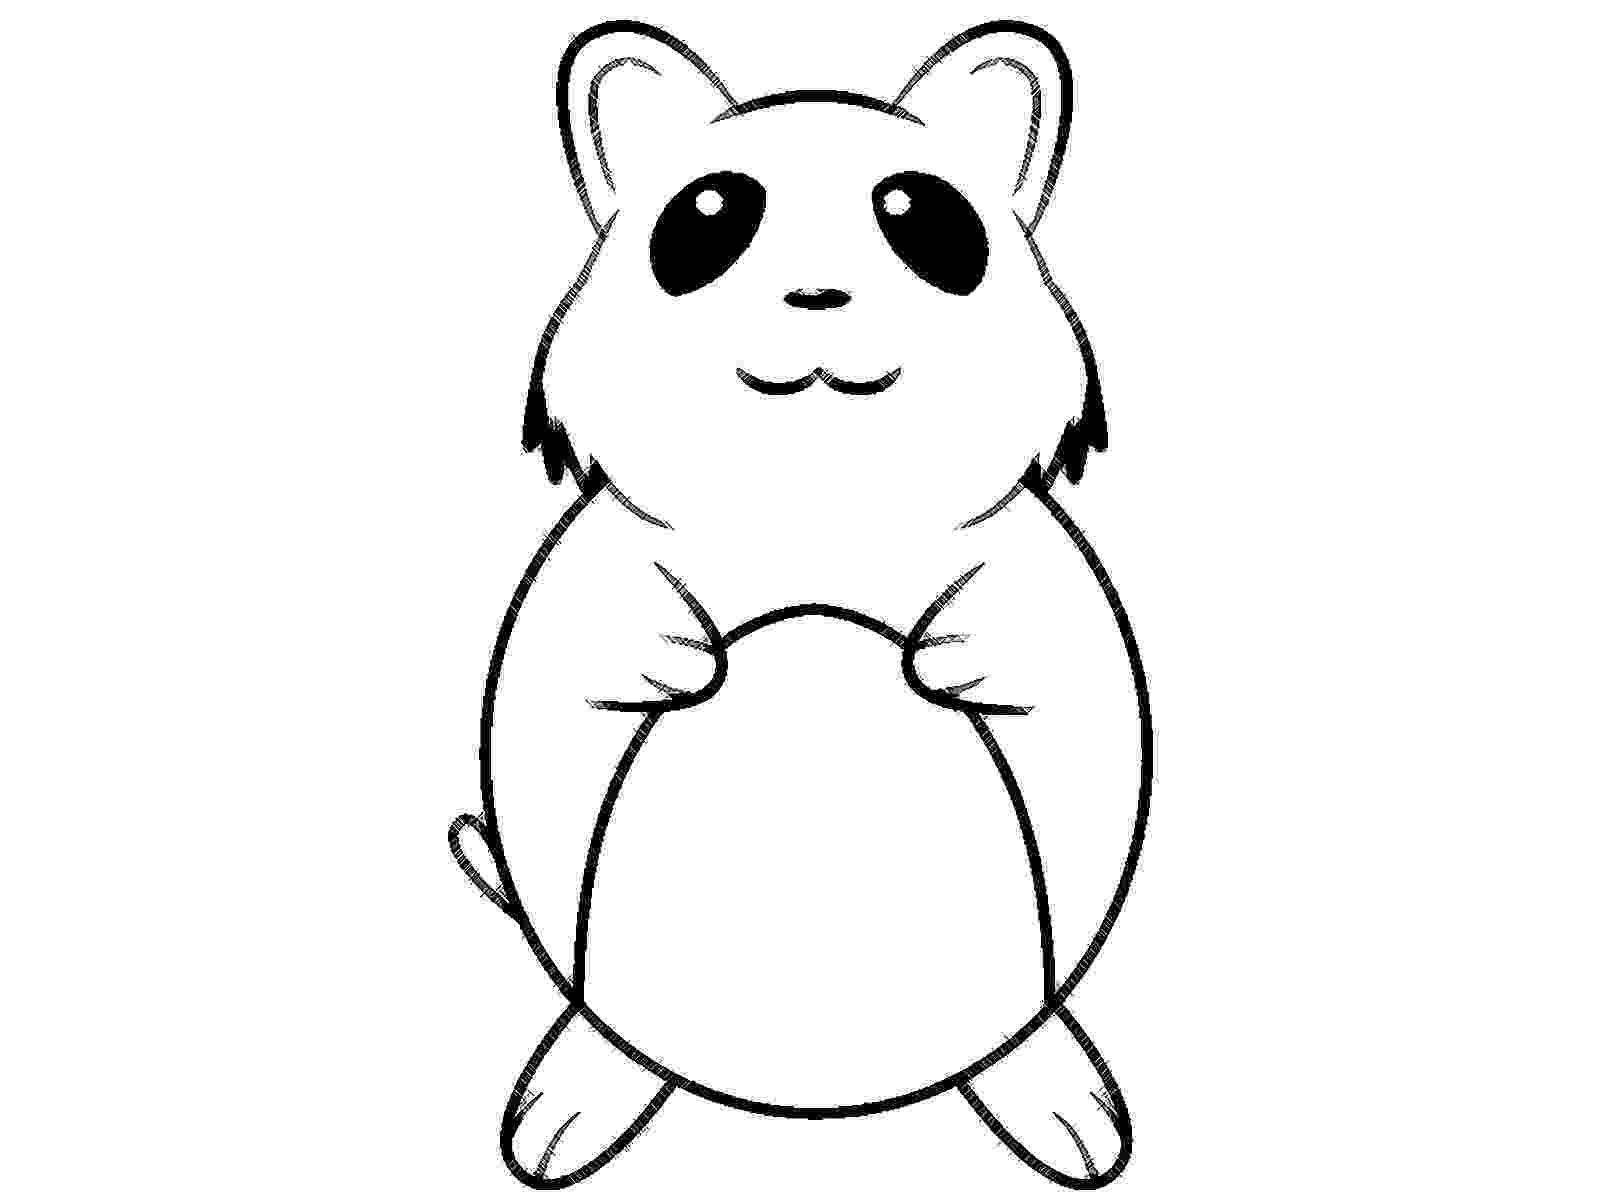 hamster colouring hamster coloring pages best coloring pages for kids colouring hamster 1 2